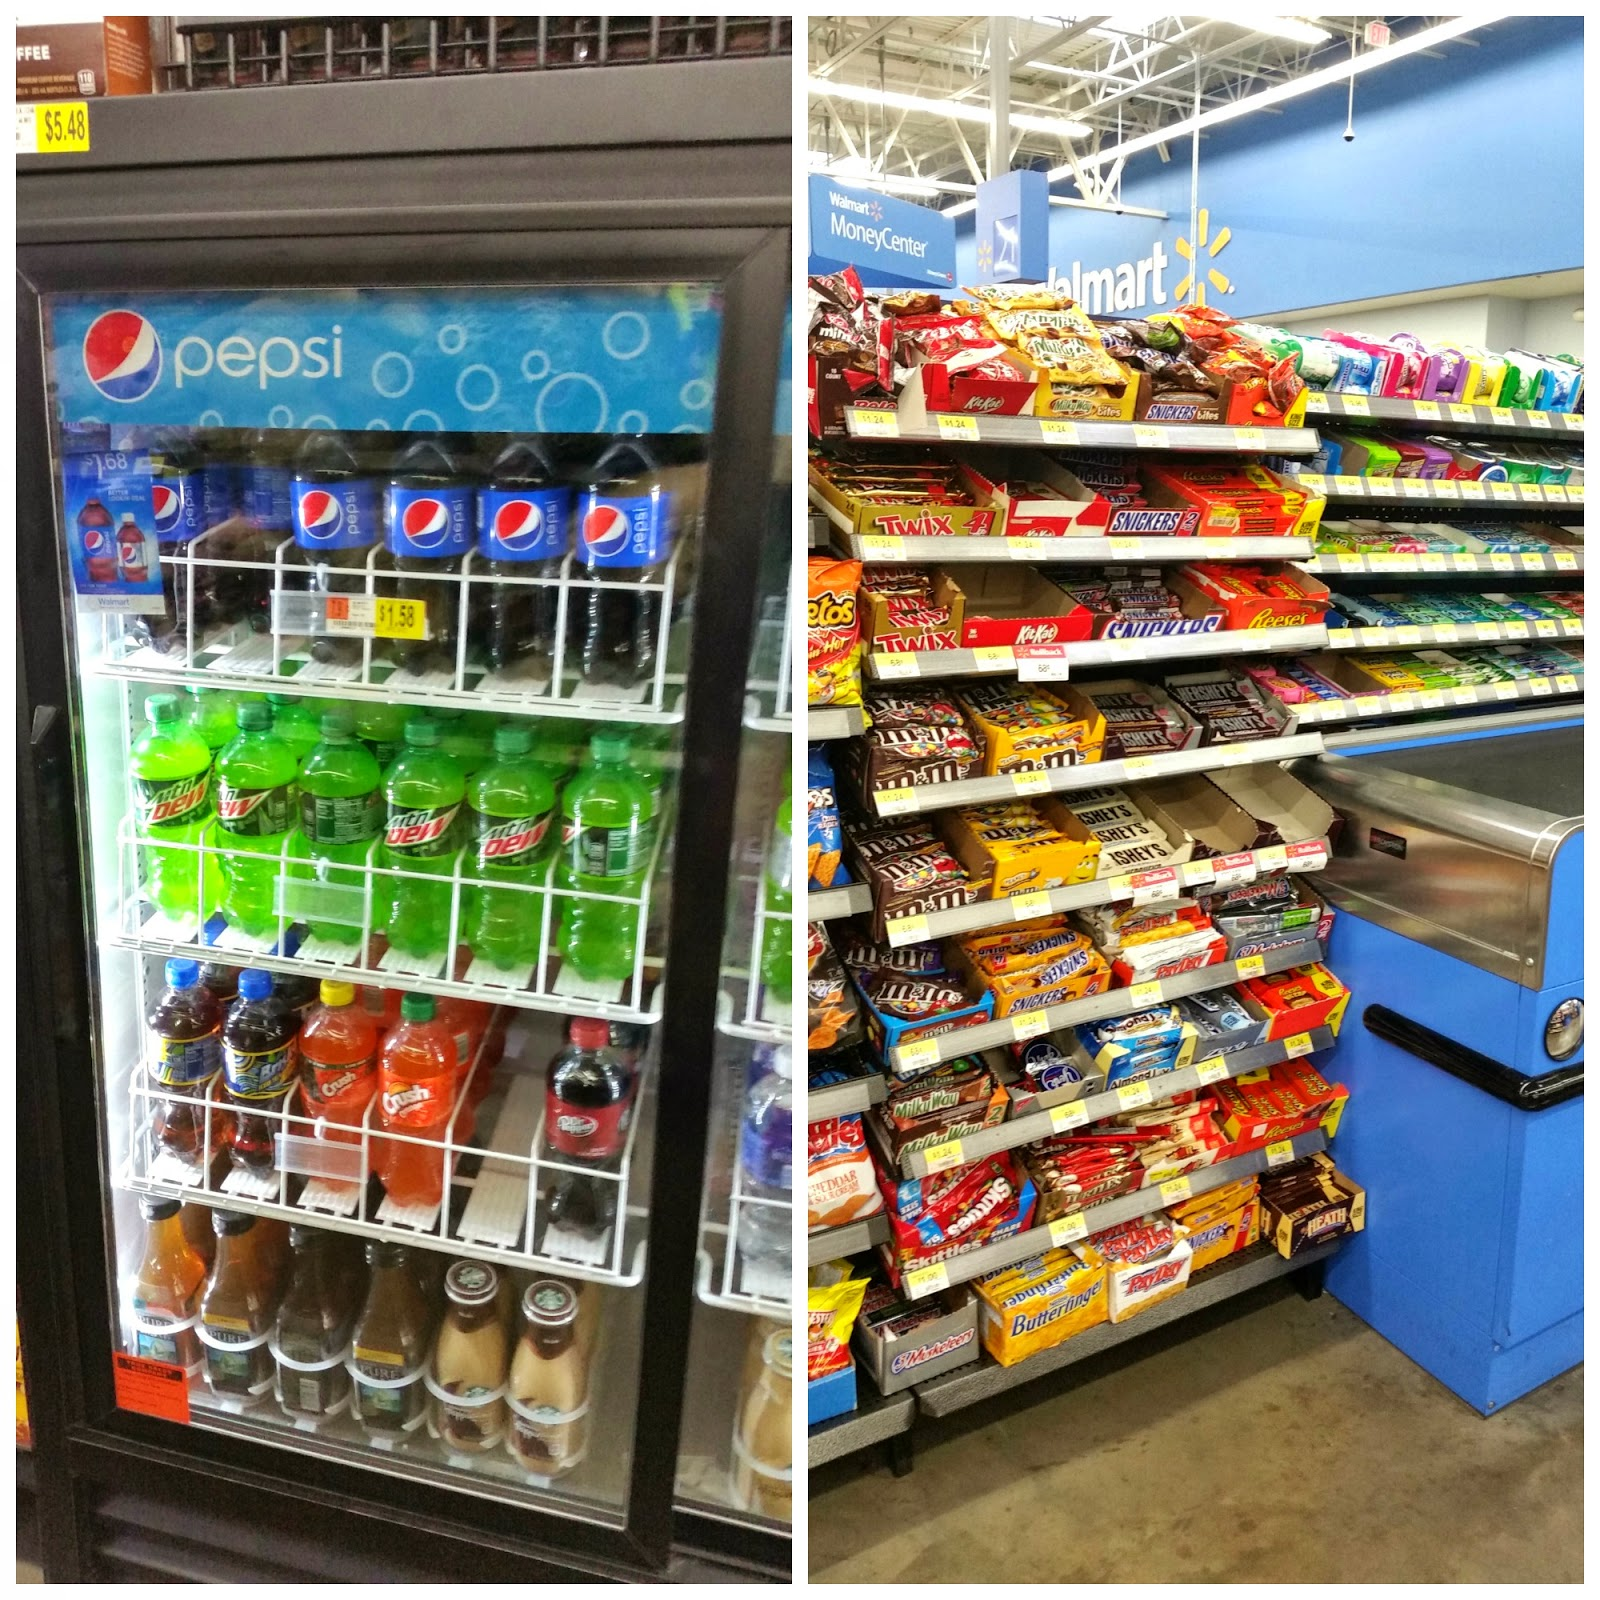 SNICKERS® 2-to-go and Dr Pepper available at Walmart #Refuel2Go